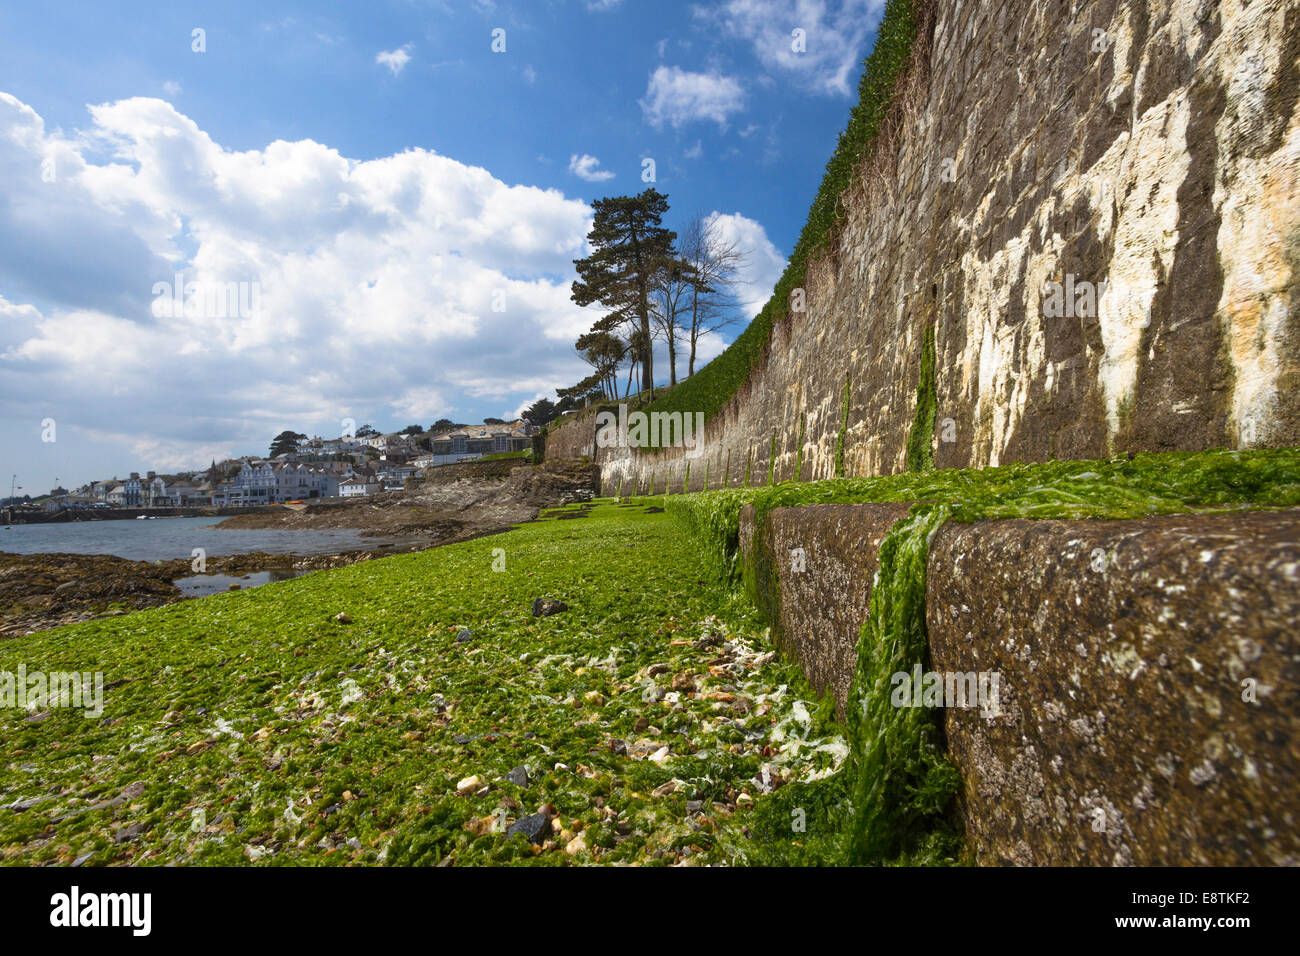 Seafront at Lowtide, St. Mawes, Cornwall, Uk, Landscape - Stock Image